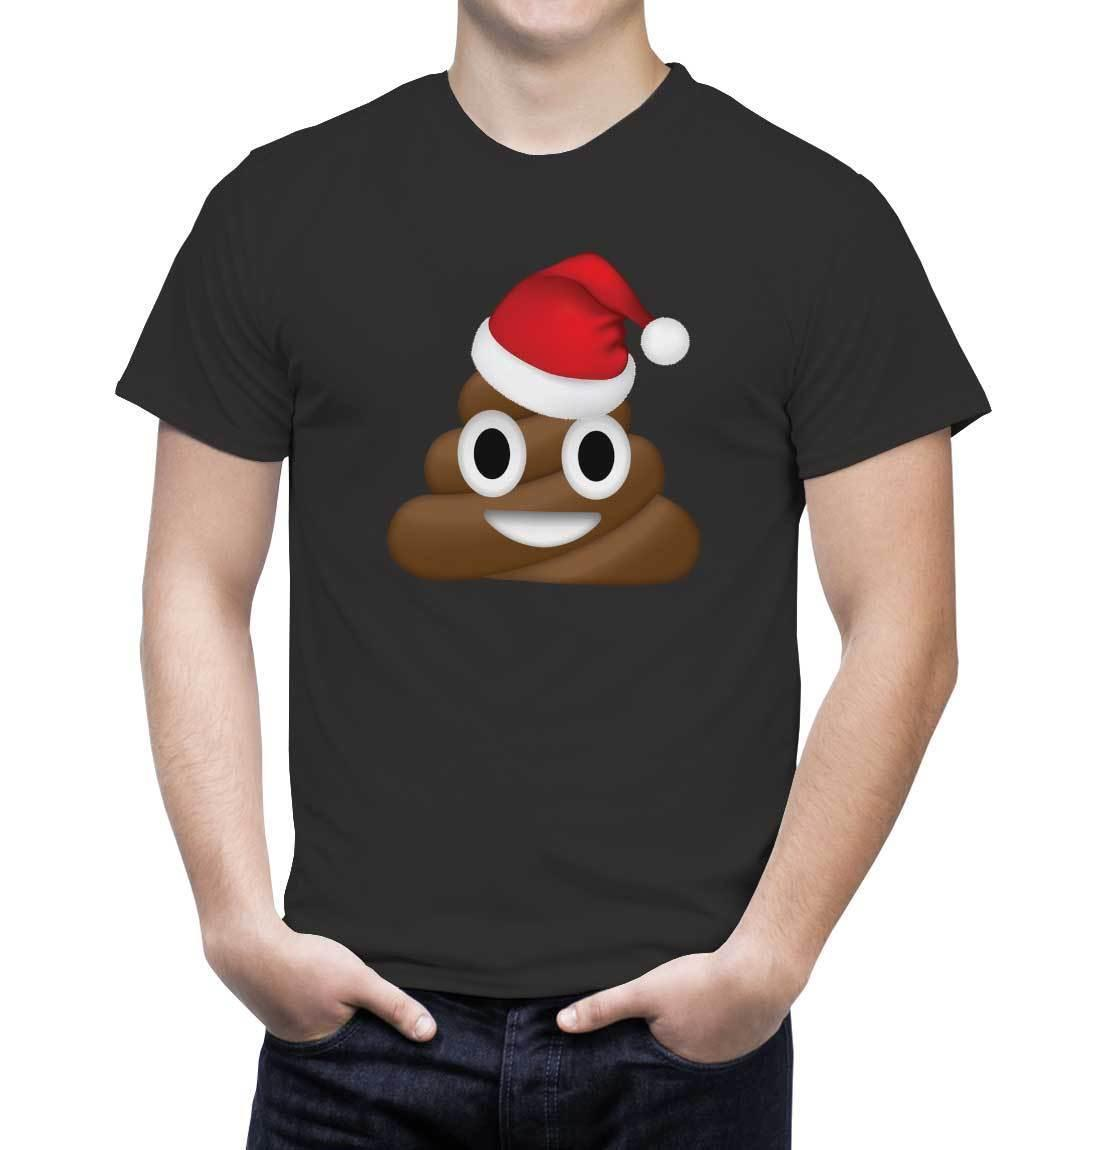 Christmas tshirts - emoji poop - emojii poo - kids / adults sizesMens 2018 fashion Brand T Shirt O-Neck 100%cotton T-Shirt Tops Tee